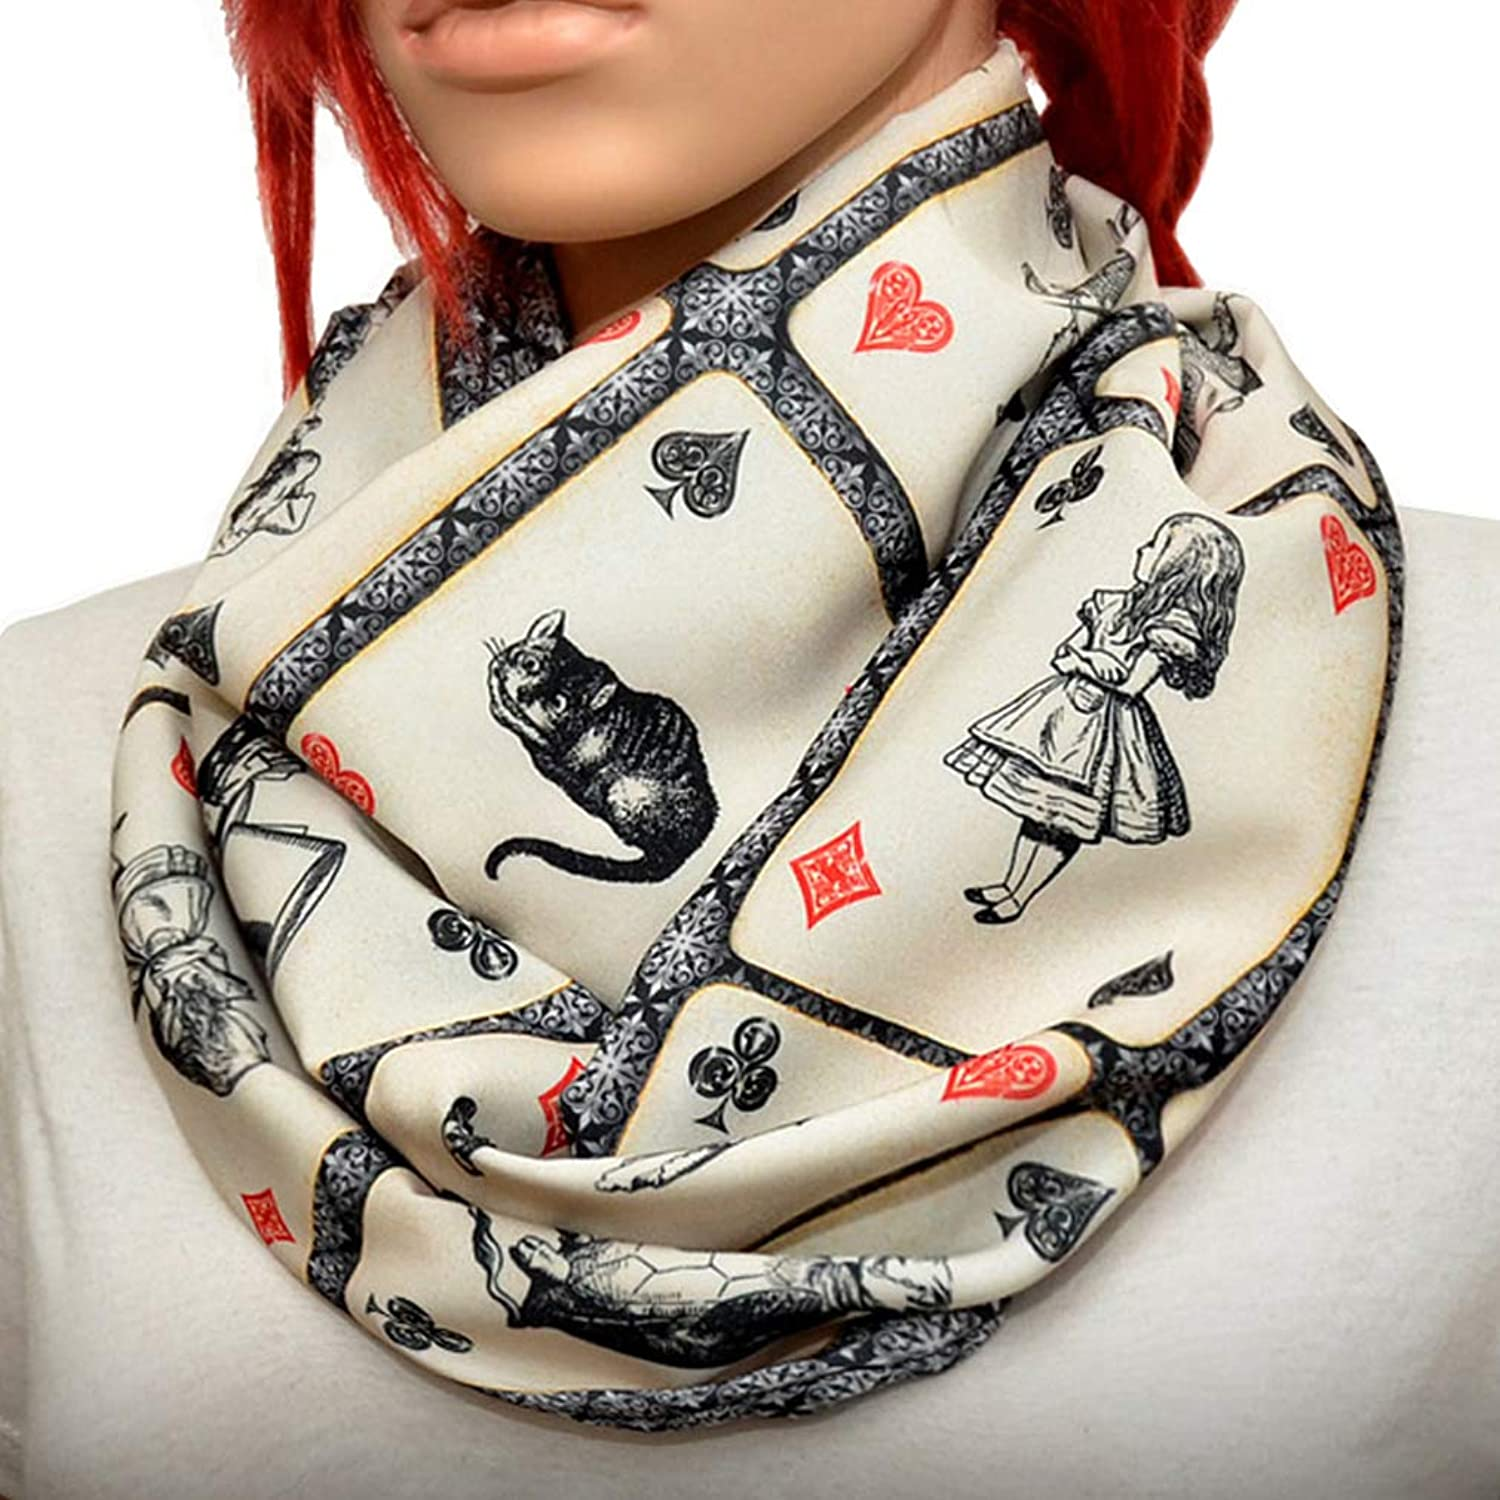 Alice in wonderland Infinity scarf (Small print)